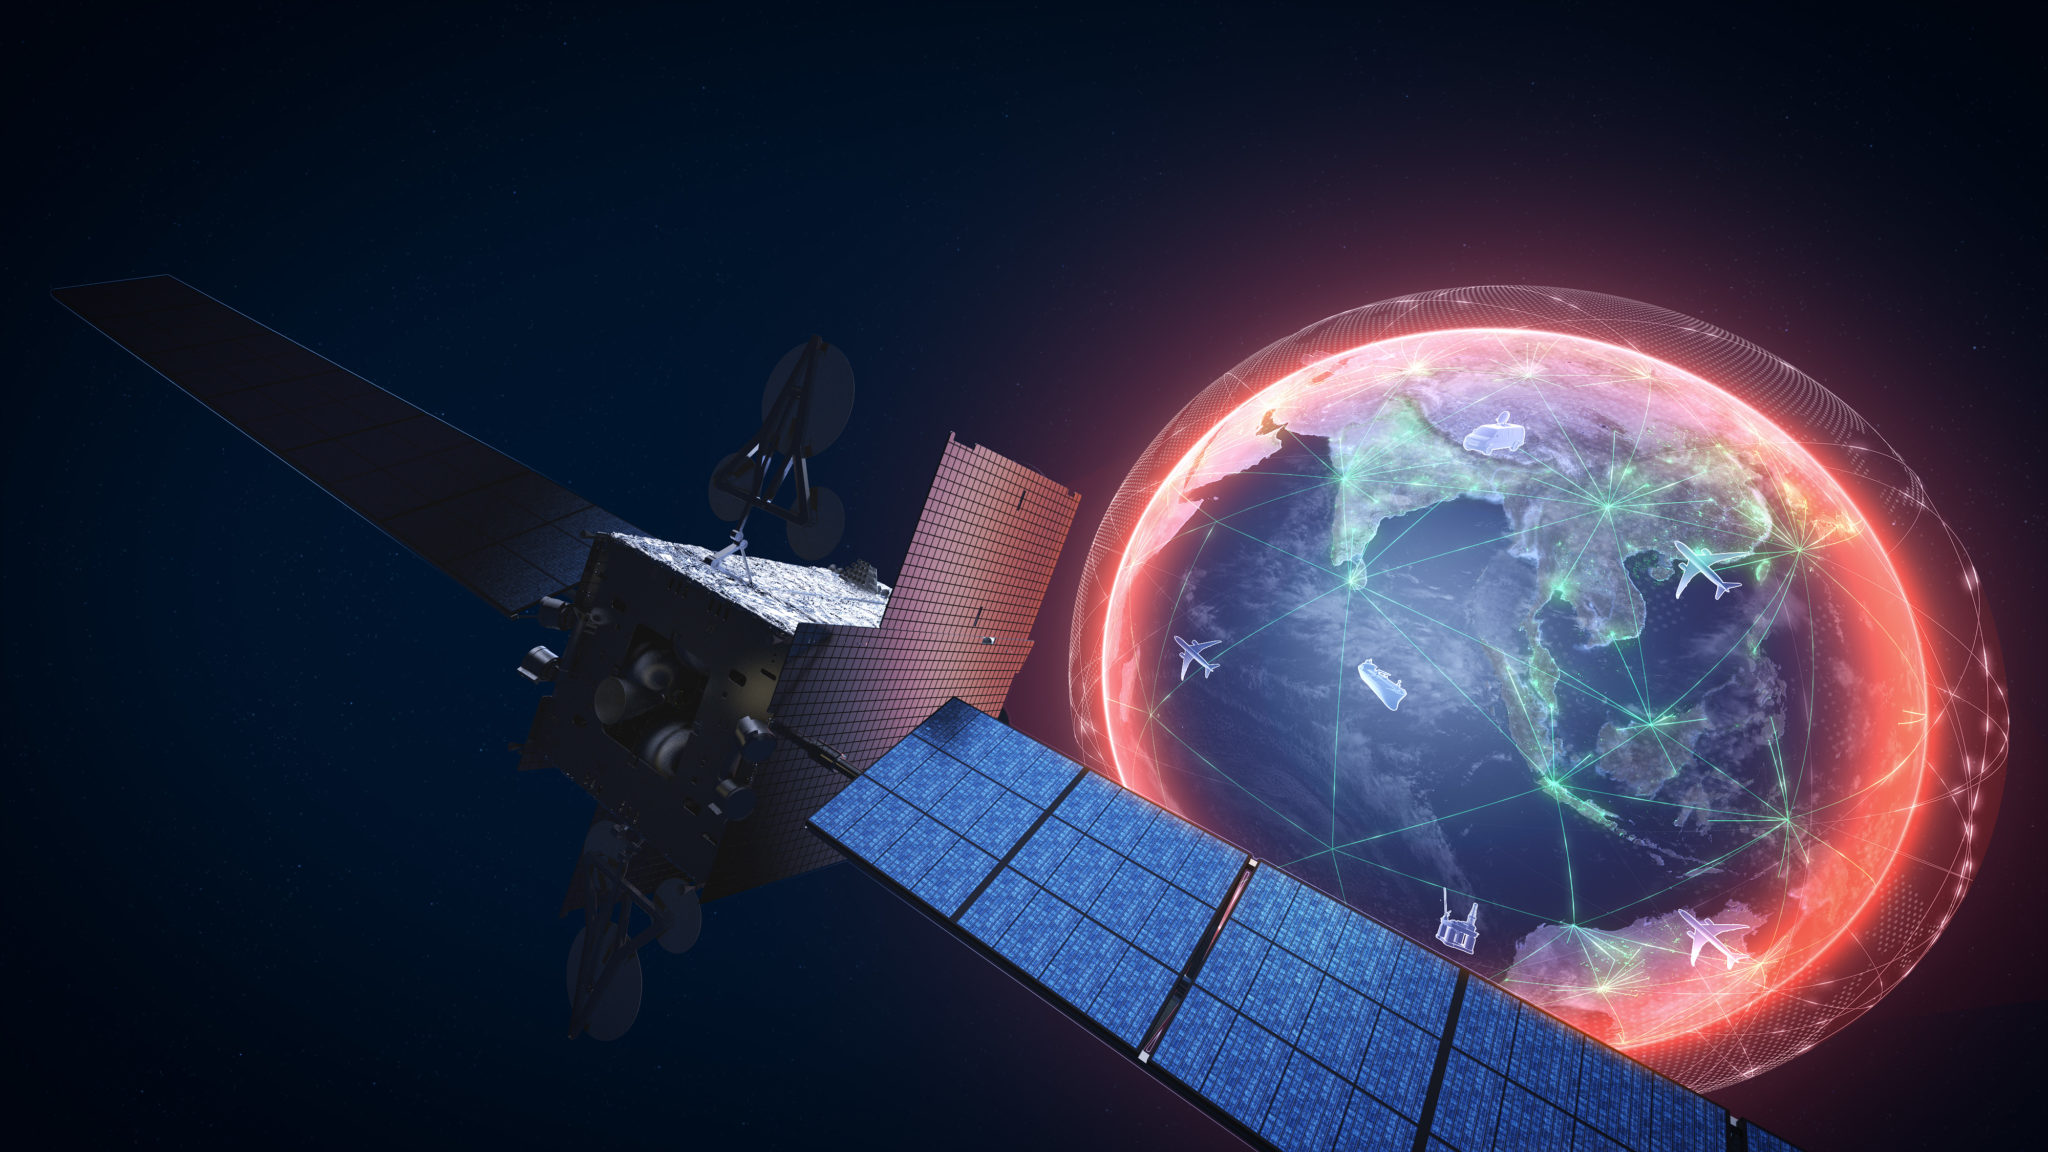 Inmarsat To See New Sales From Global GX Launch Satellite Today - Today satellite image of world